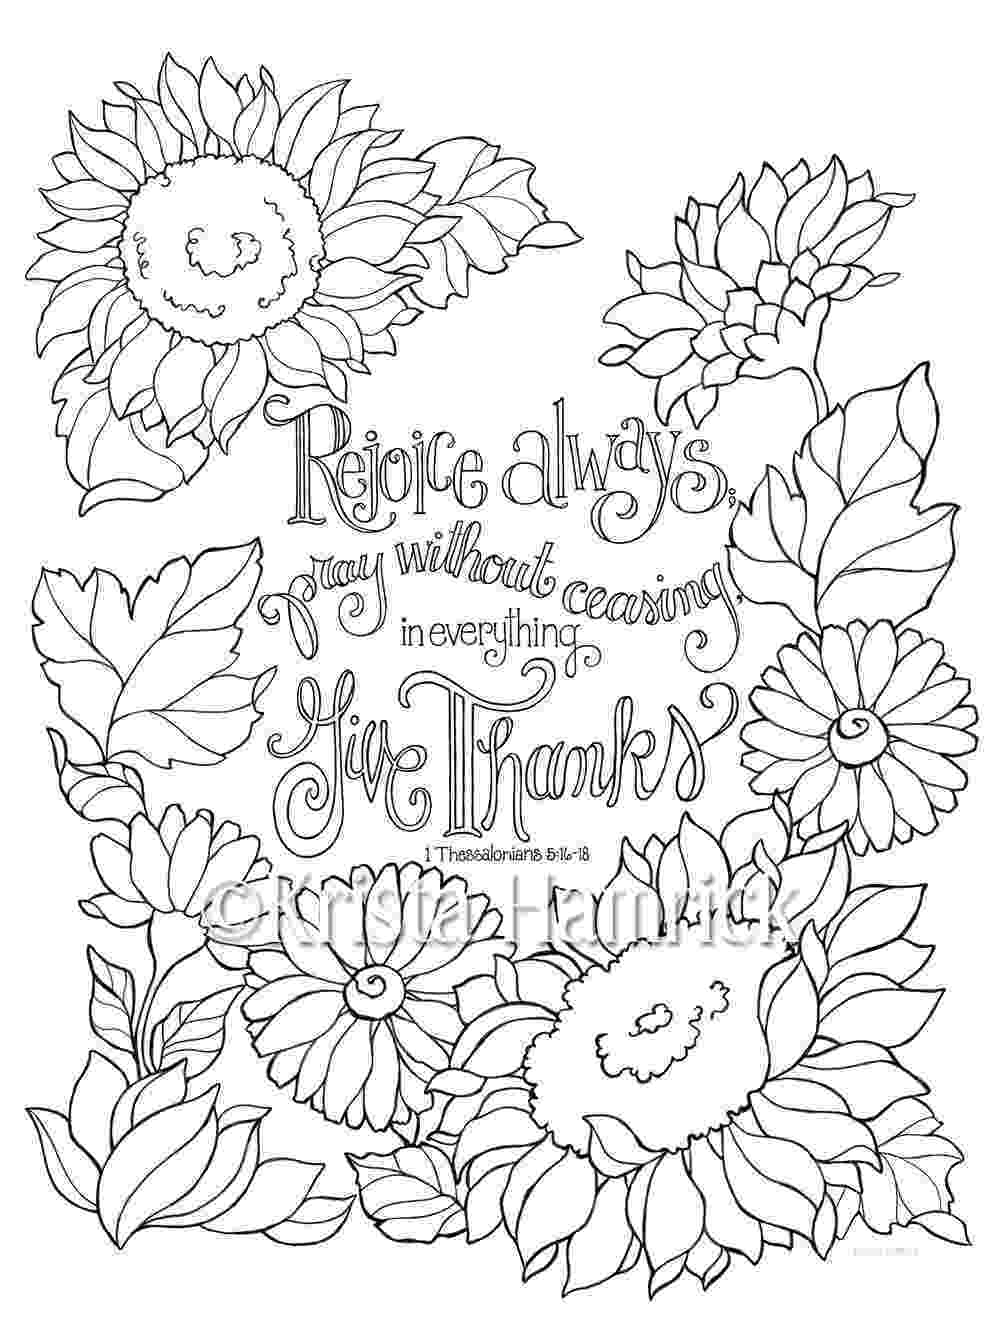 coloring bible rejoice always coloring page in two sizes 85x11 and bible coloring bible